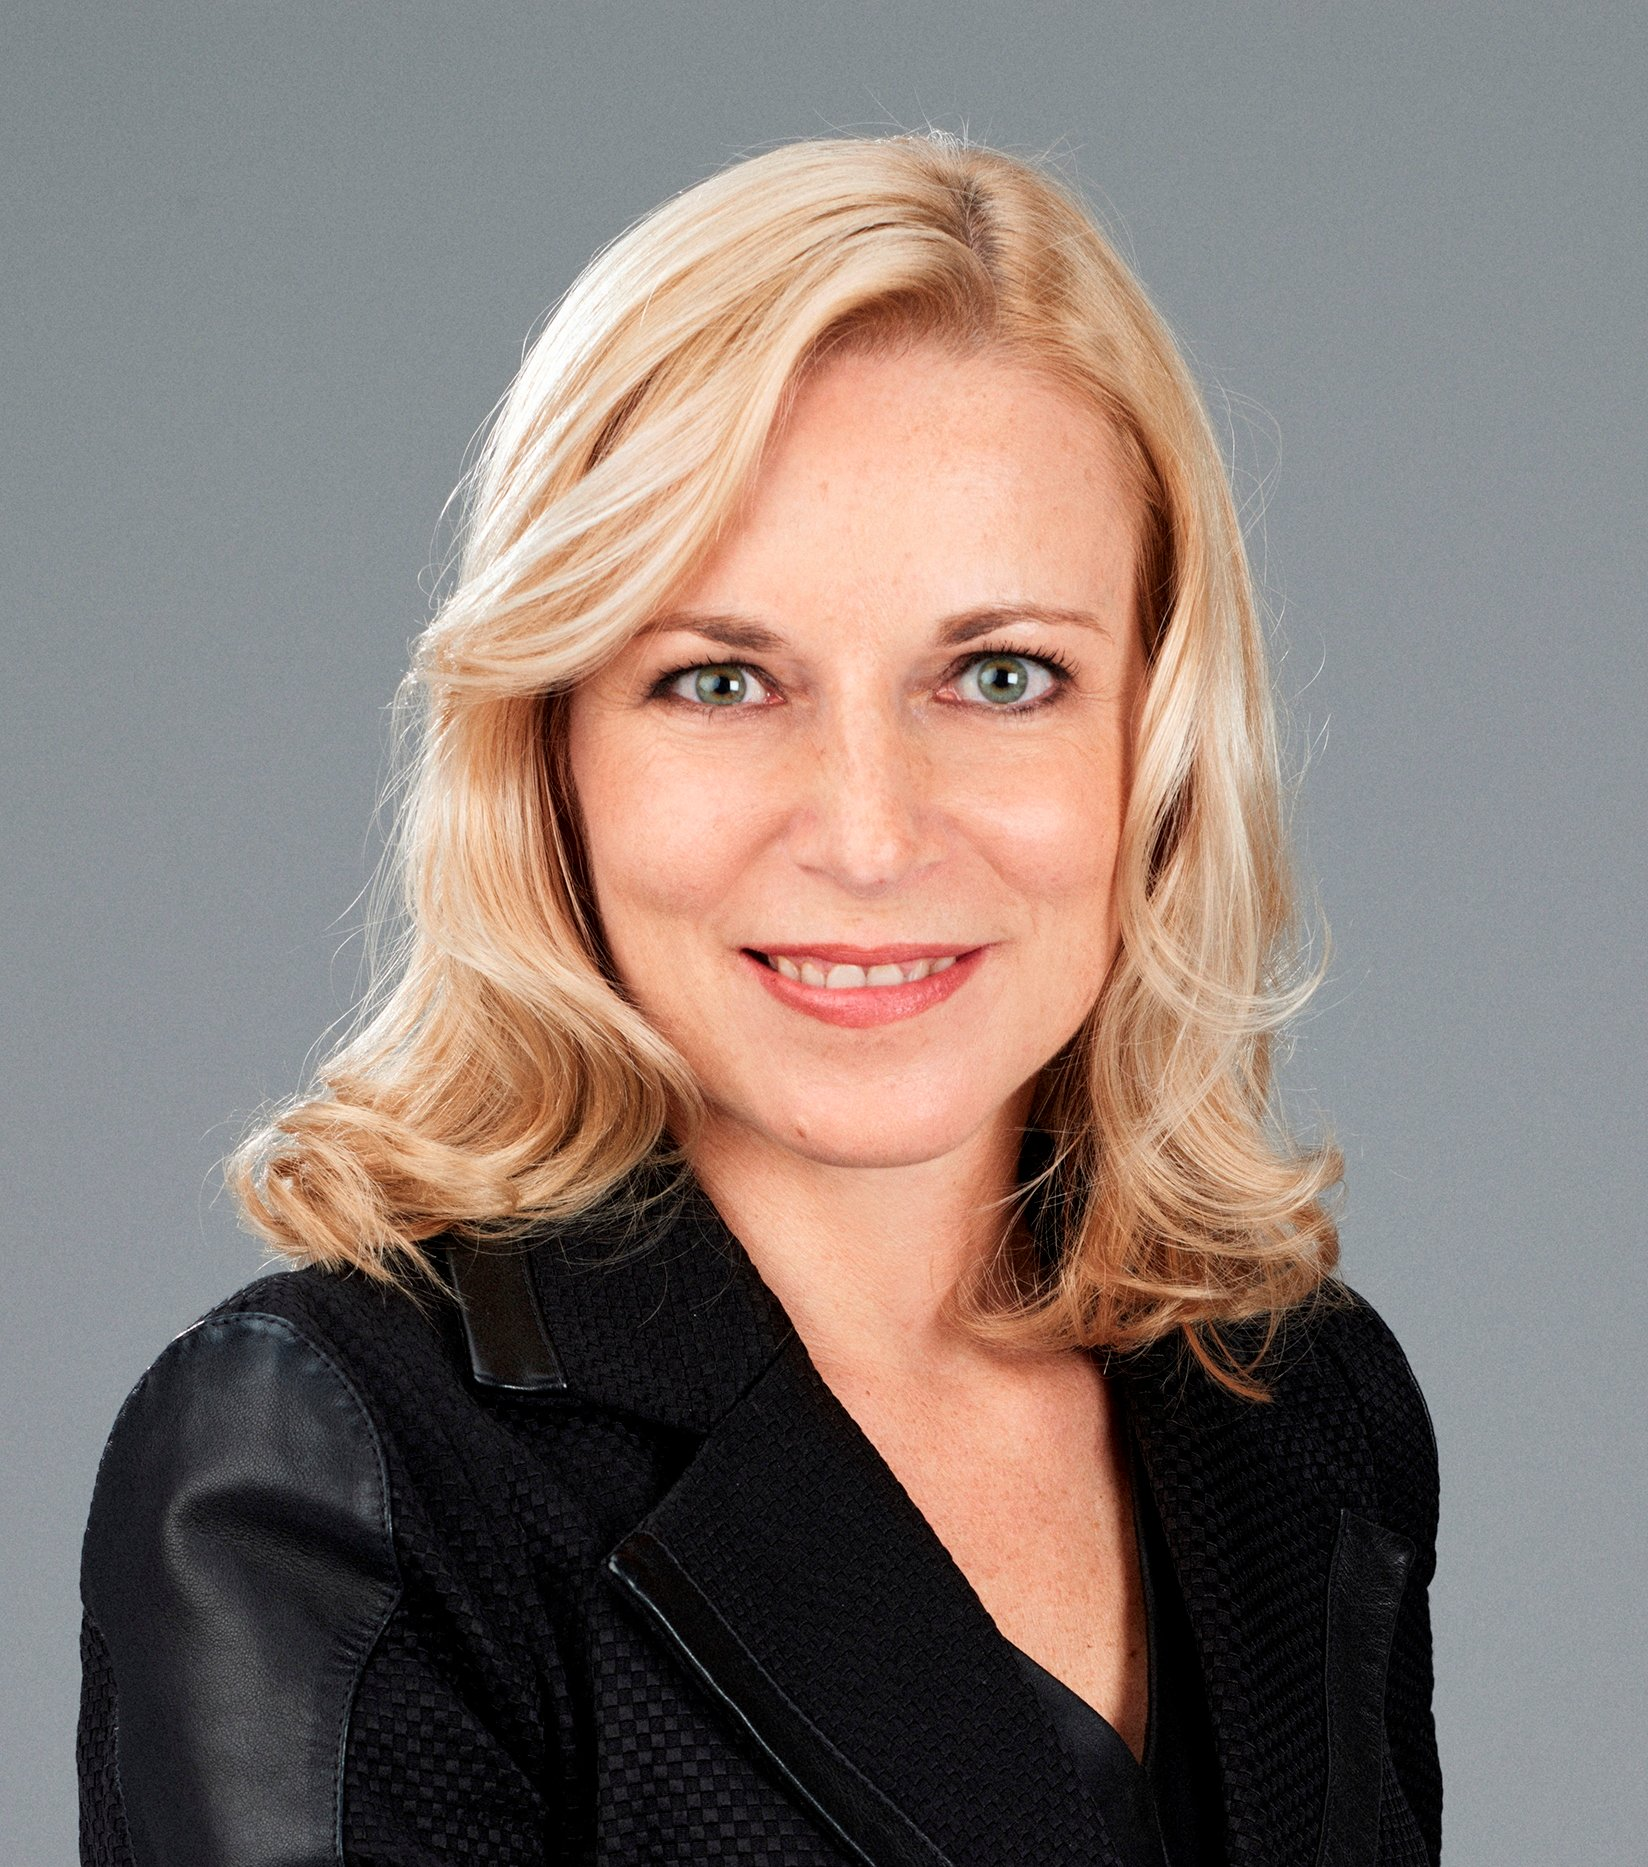 Sylvie Moreau, Executive Vice-President Global Wella